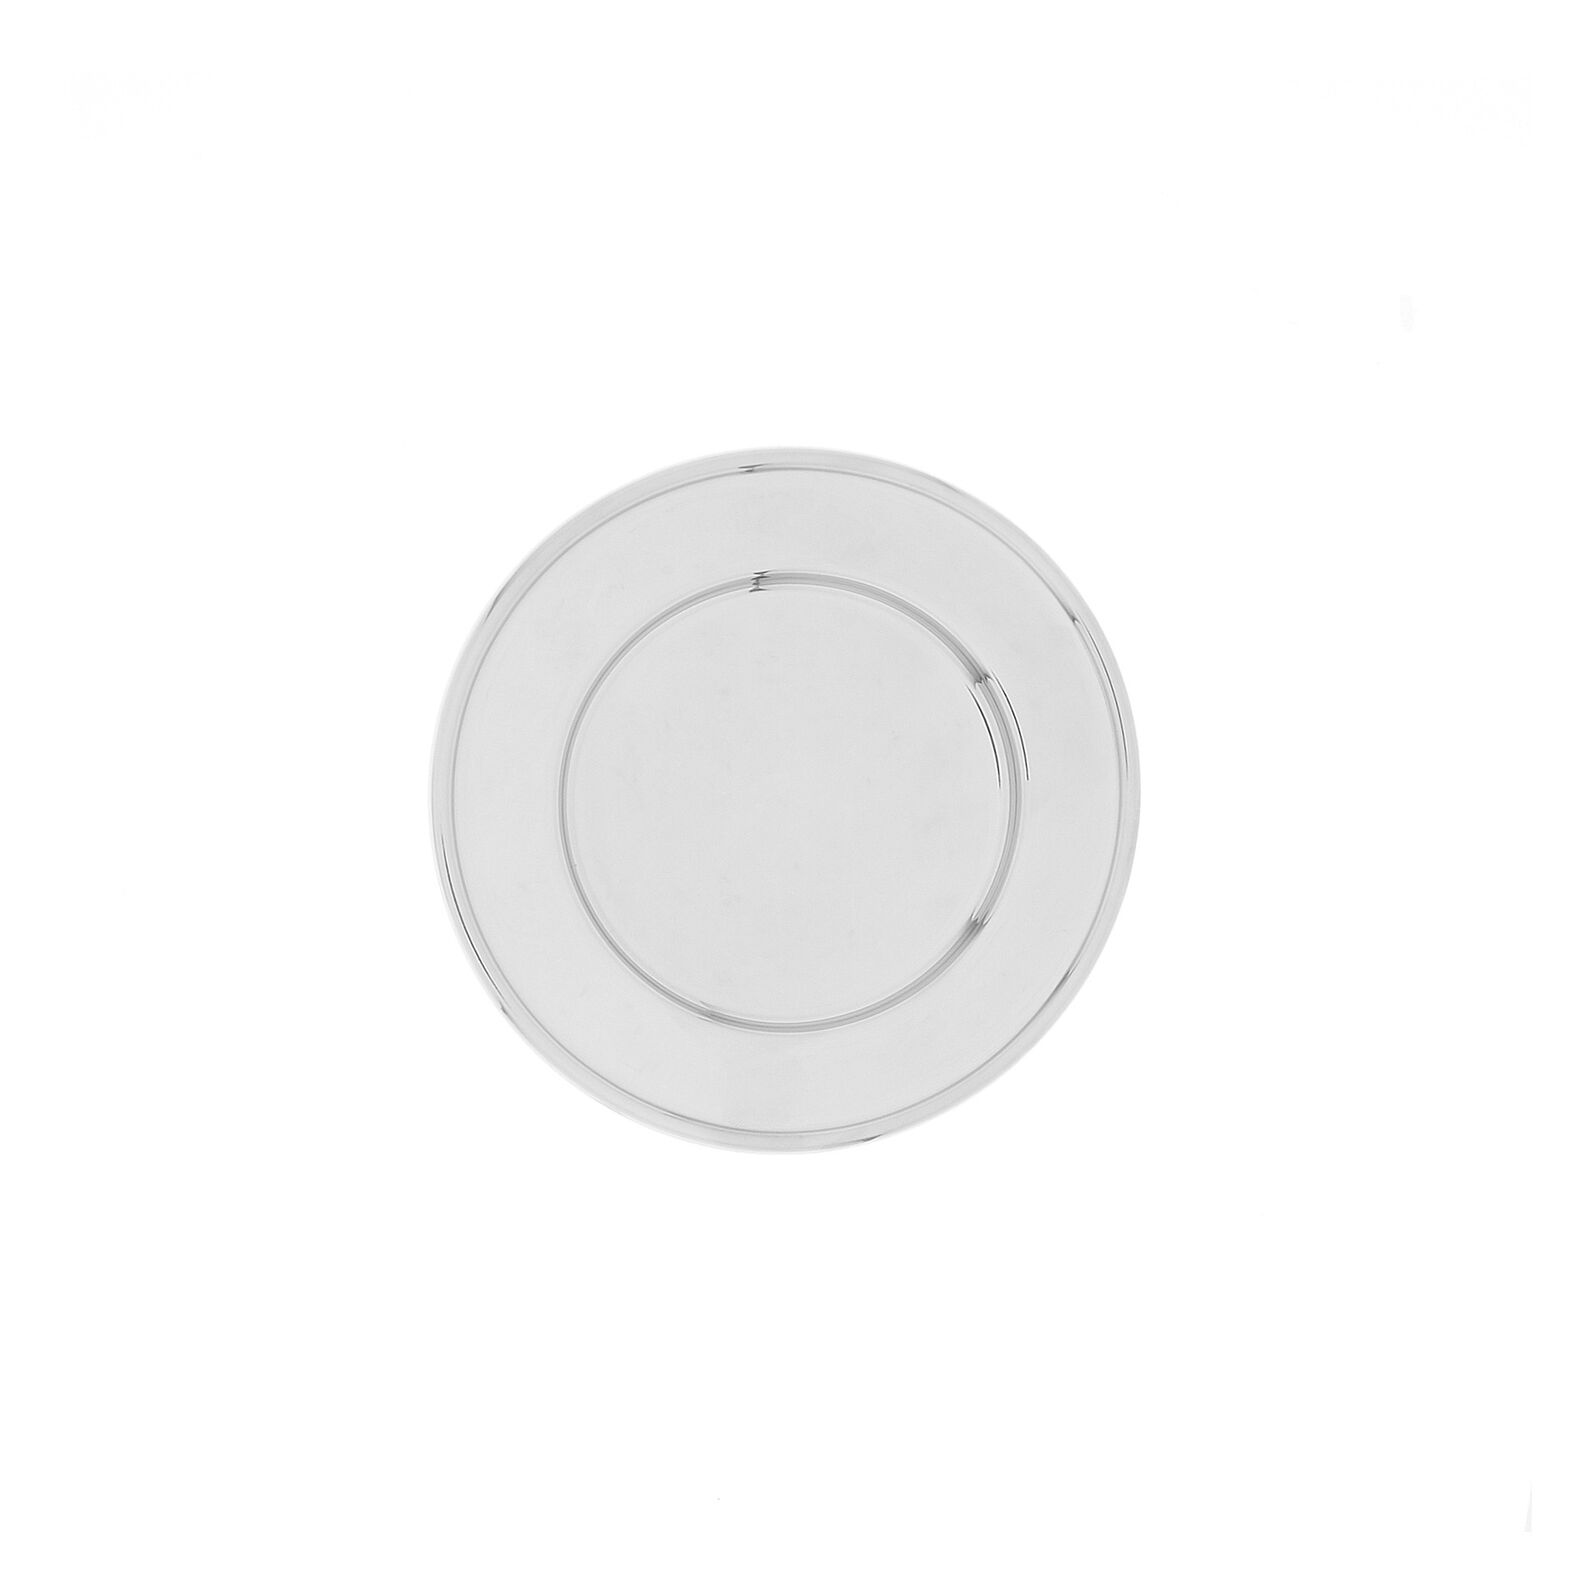 Stainless steel bread saucer